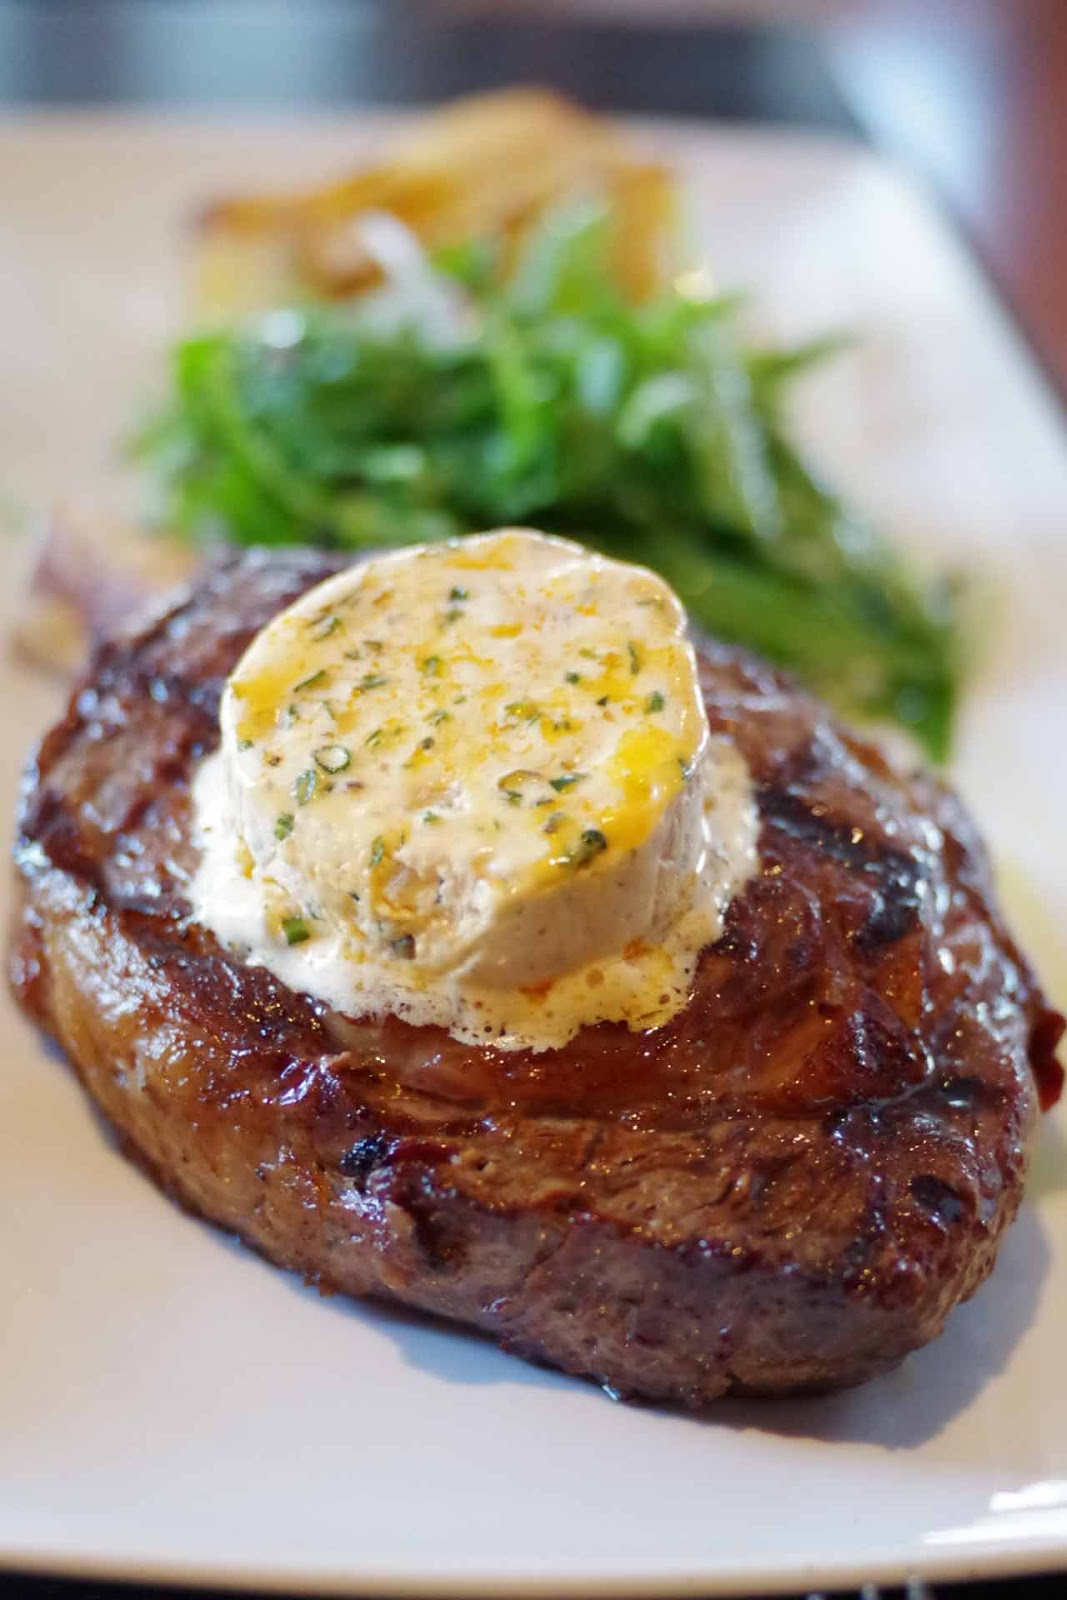 Rib eye steak image